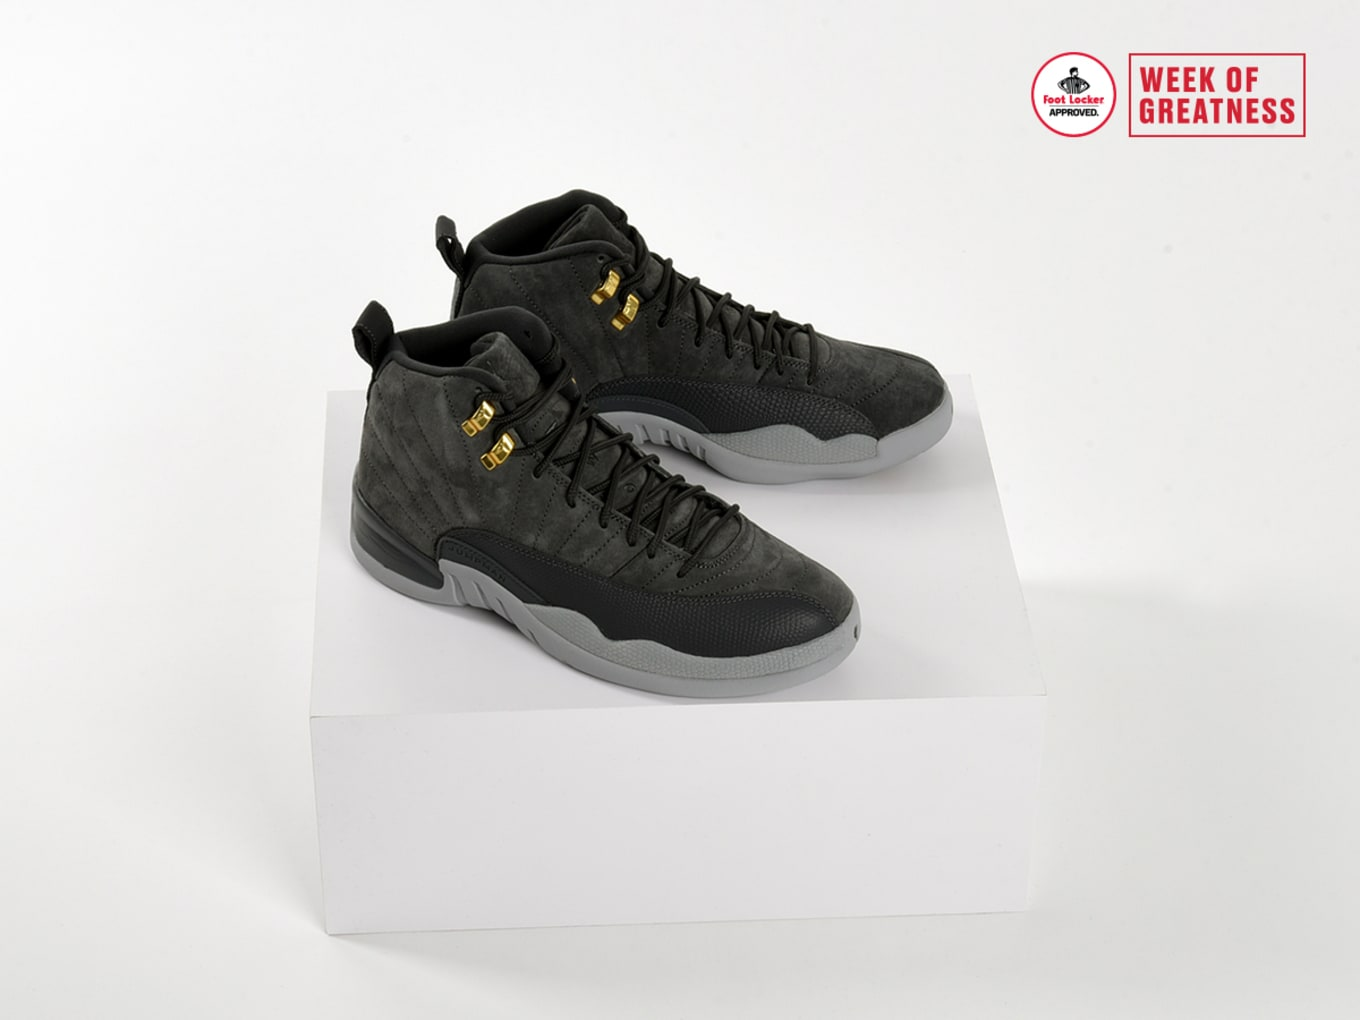 Foot Locker Teases Their Exclusive Holiday Releases 898a676db